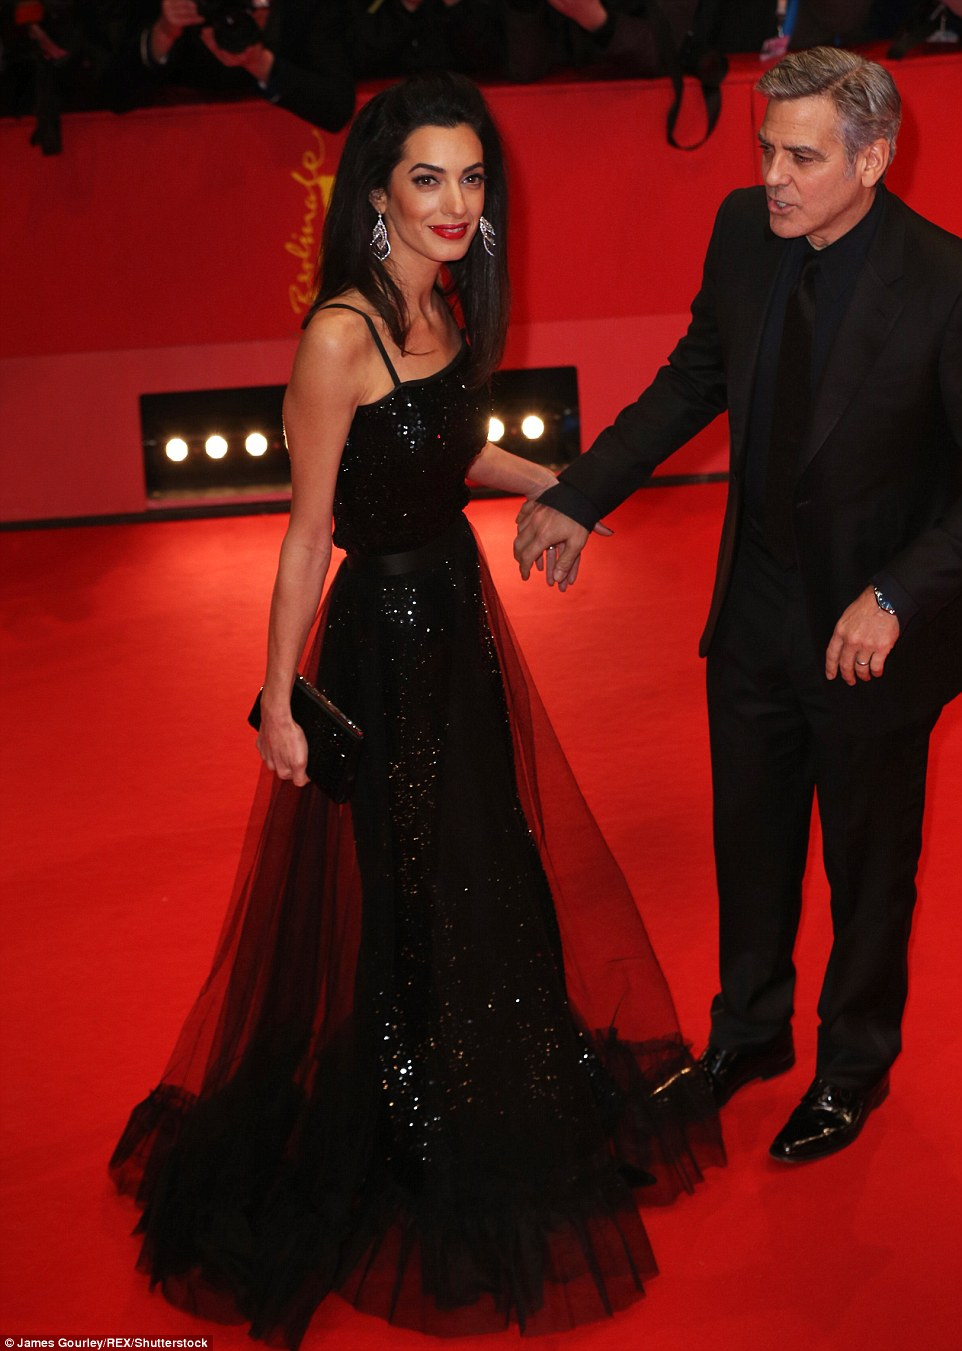 George Clooney and Amal on the red carpet for Hail Caesar Berlin Film Fest premiere 311A383F00000578-3442938-image-m-171_1455220801160